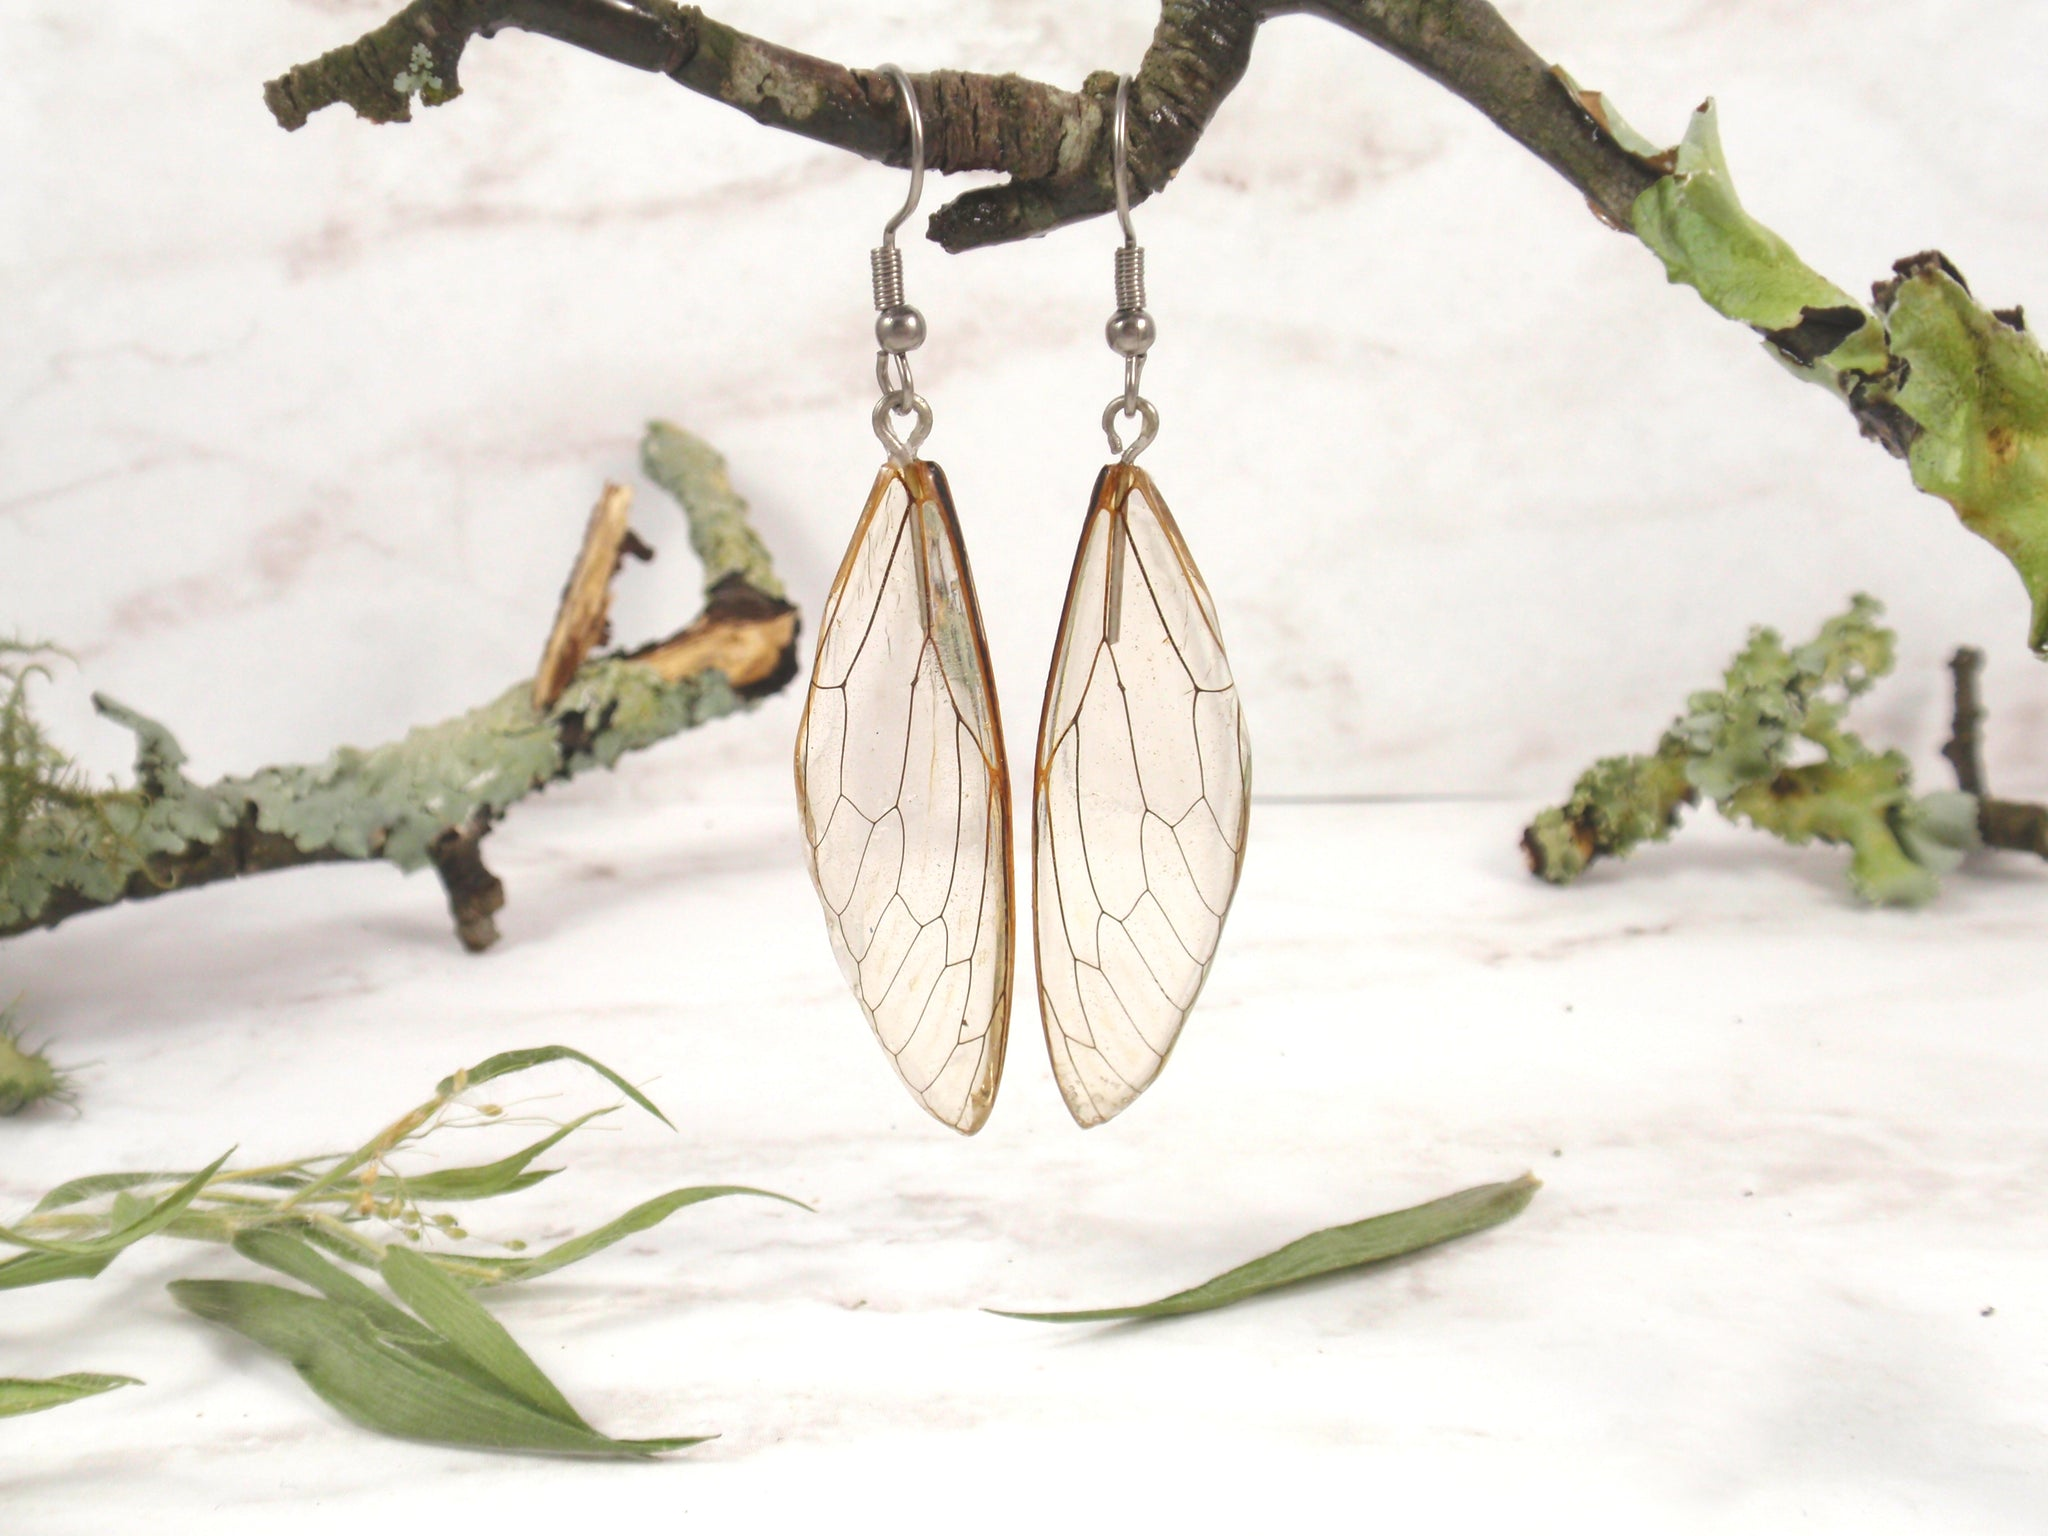 Cicada earrings handmade resin earrings